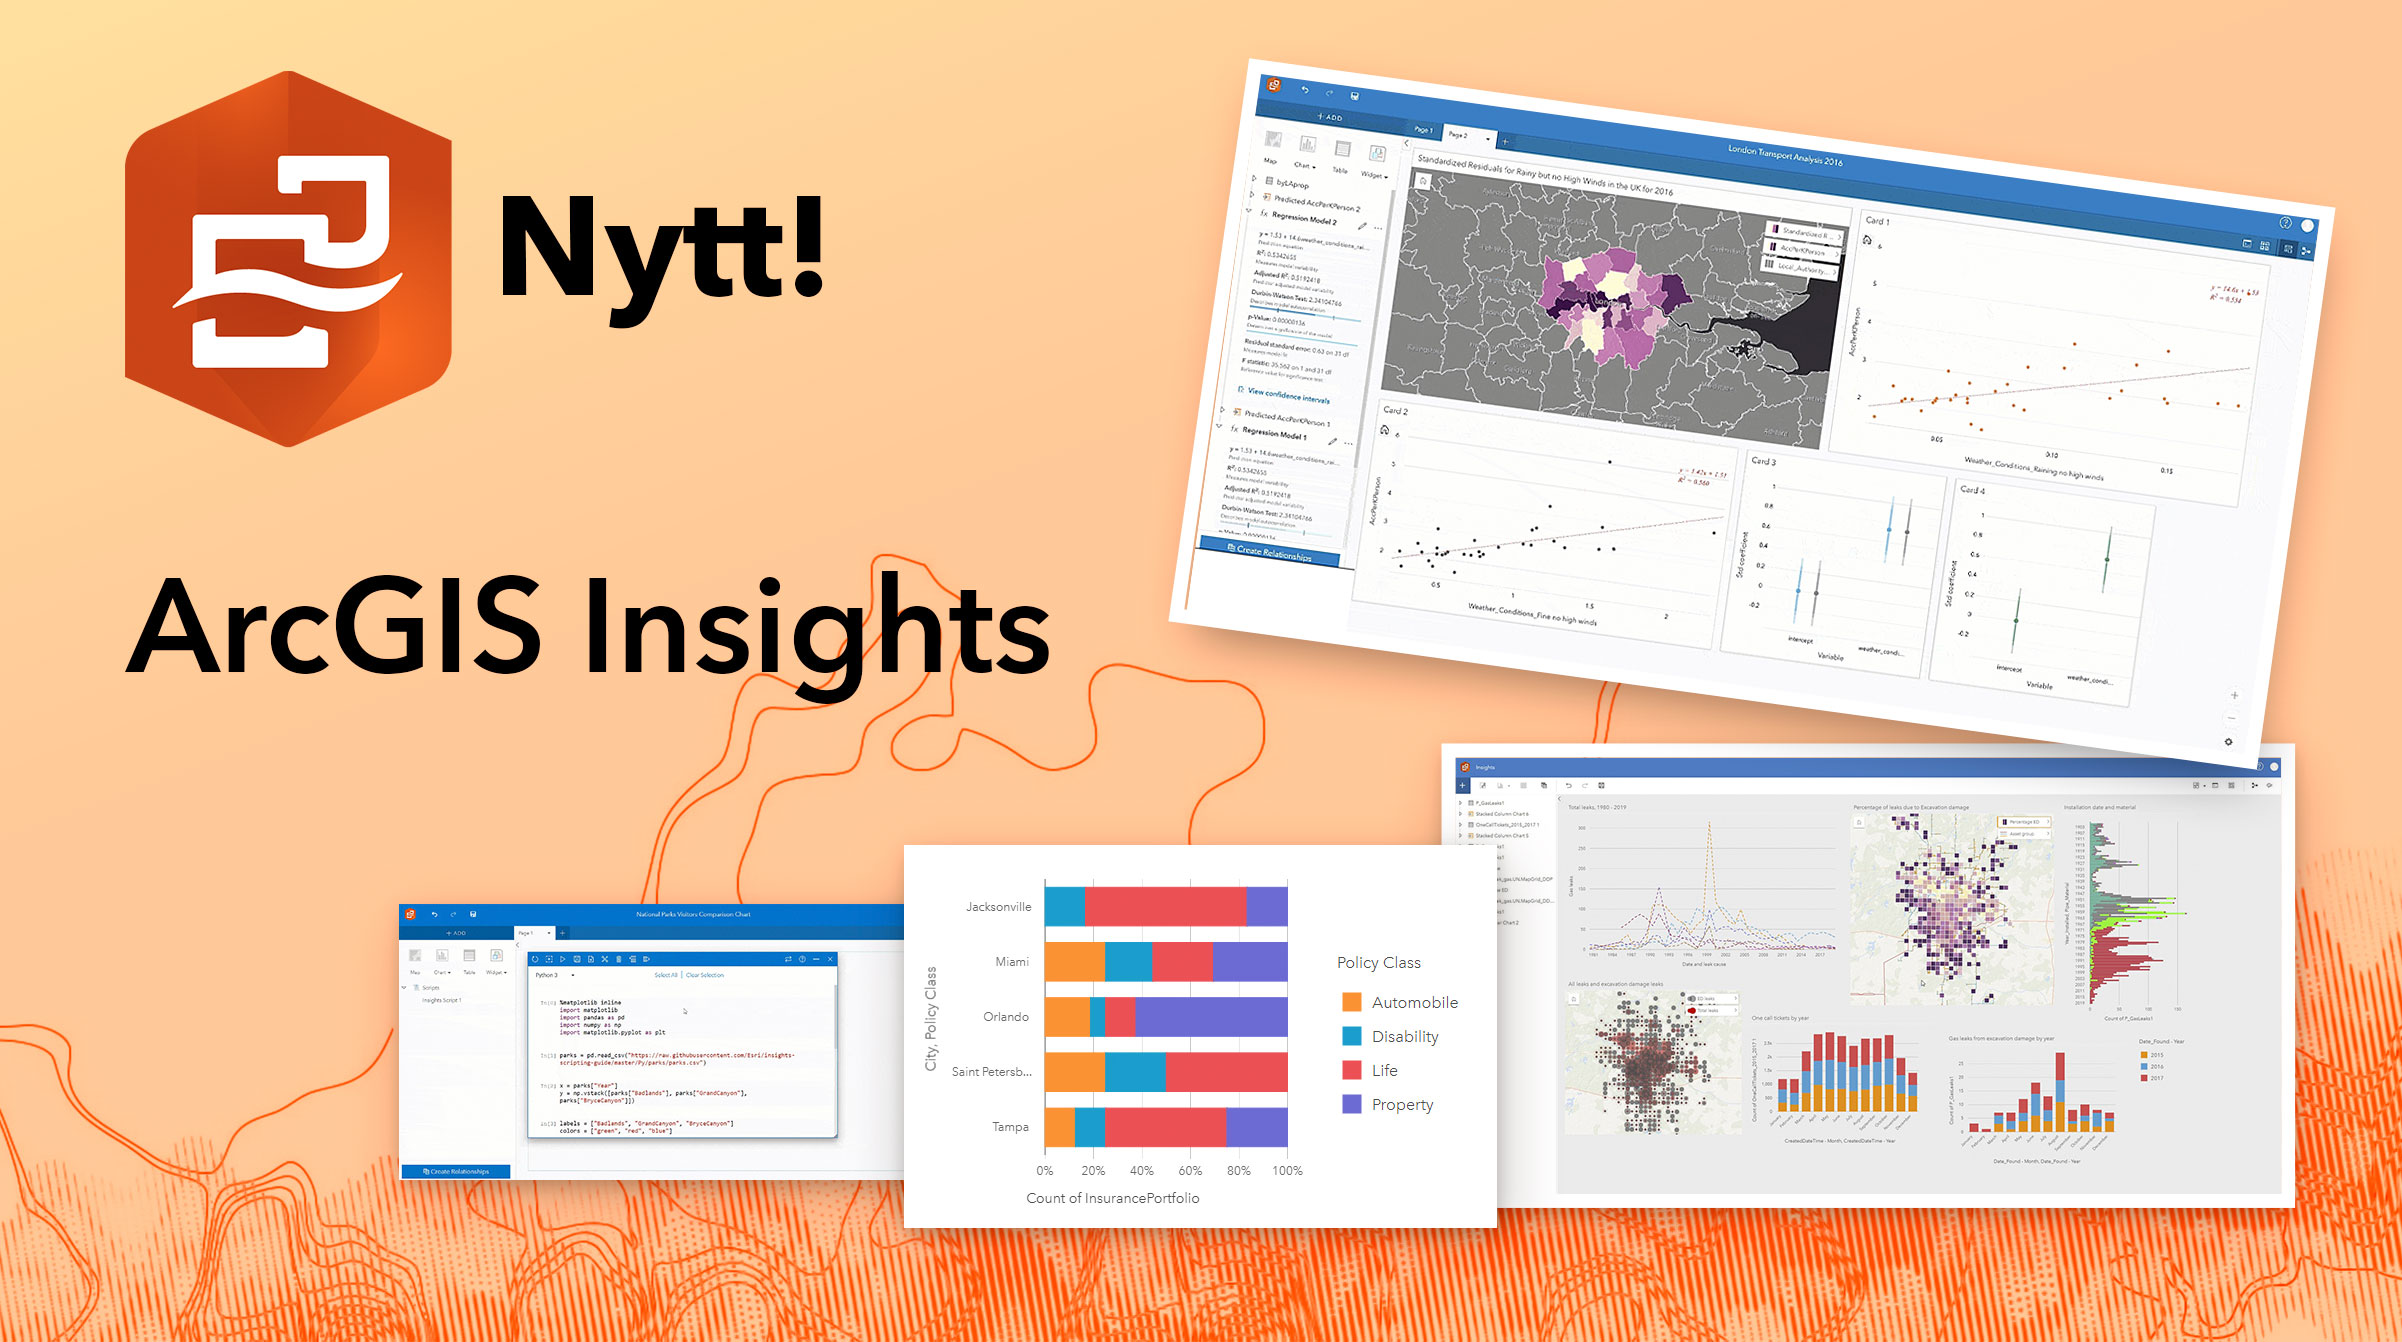 ArcGIS Insights